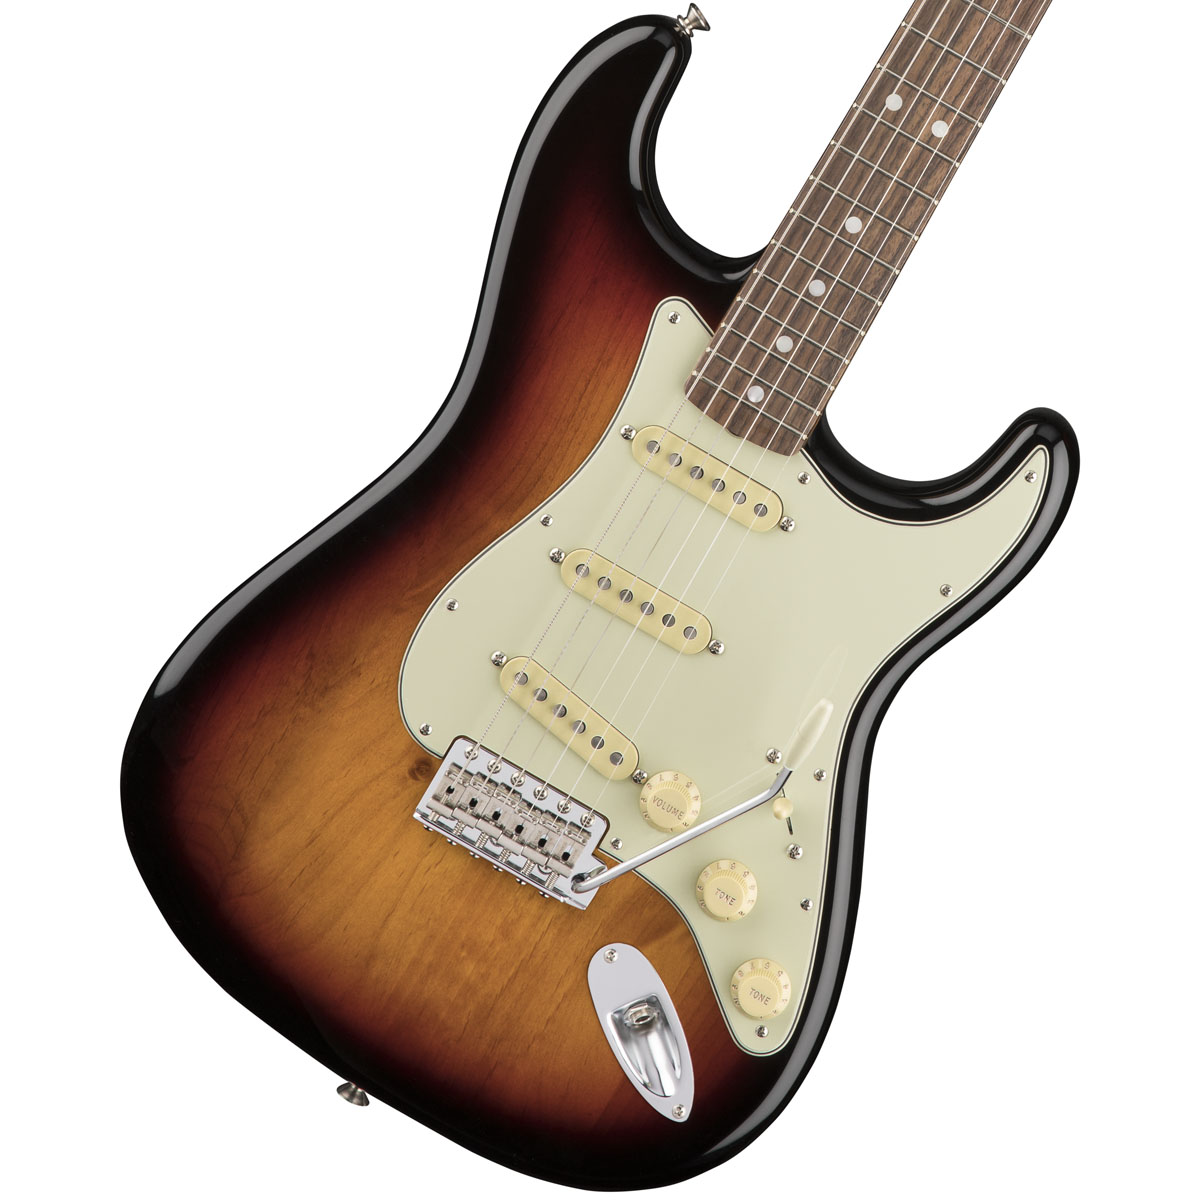 Fender USA / American Original 60s Stratocaster 3 Color Sunburst 《カスタムショップのお手入れ用品を進呈/+671038200》【YRK】